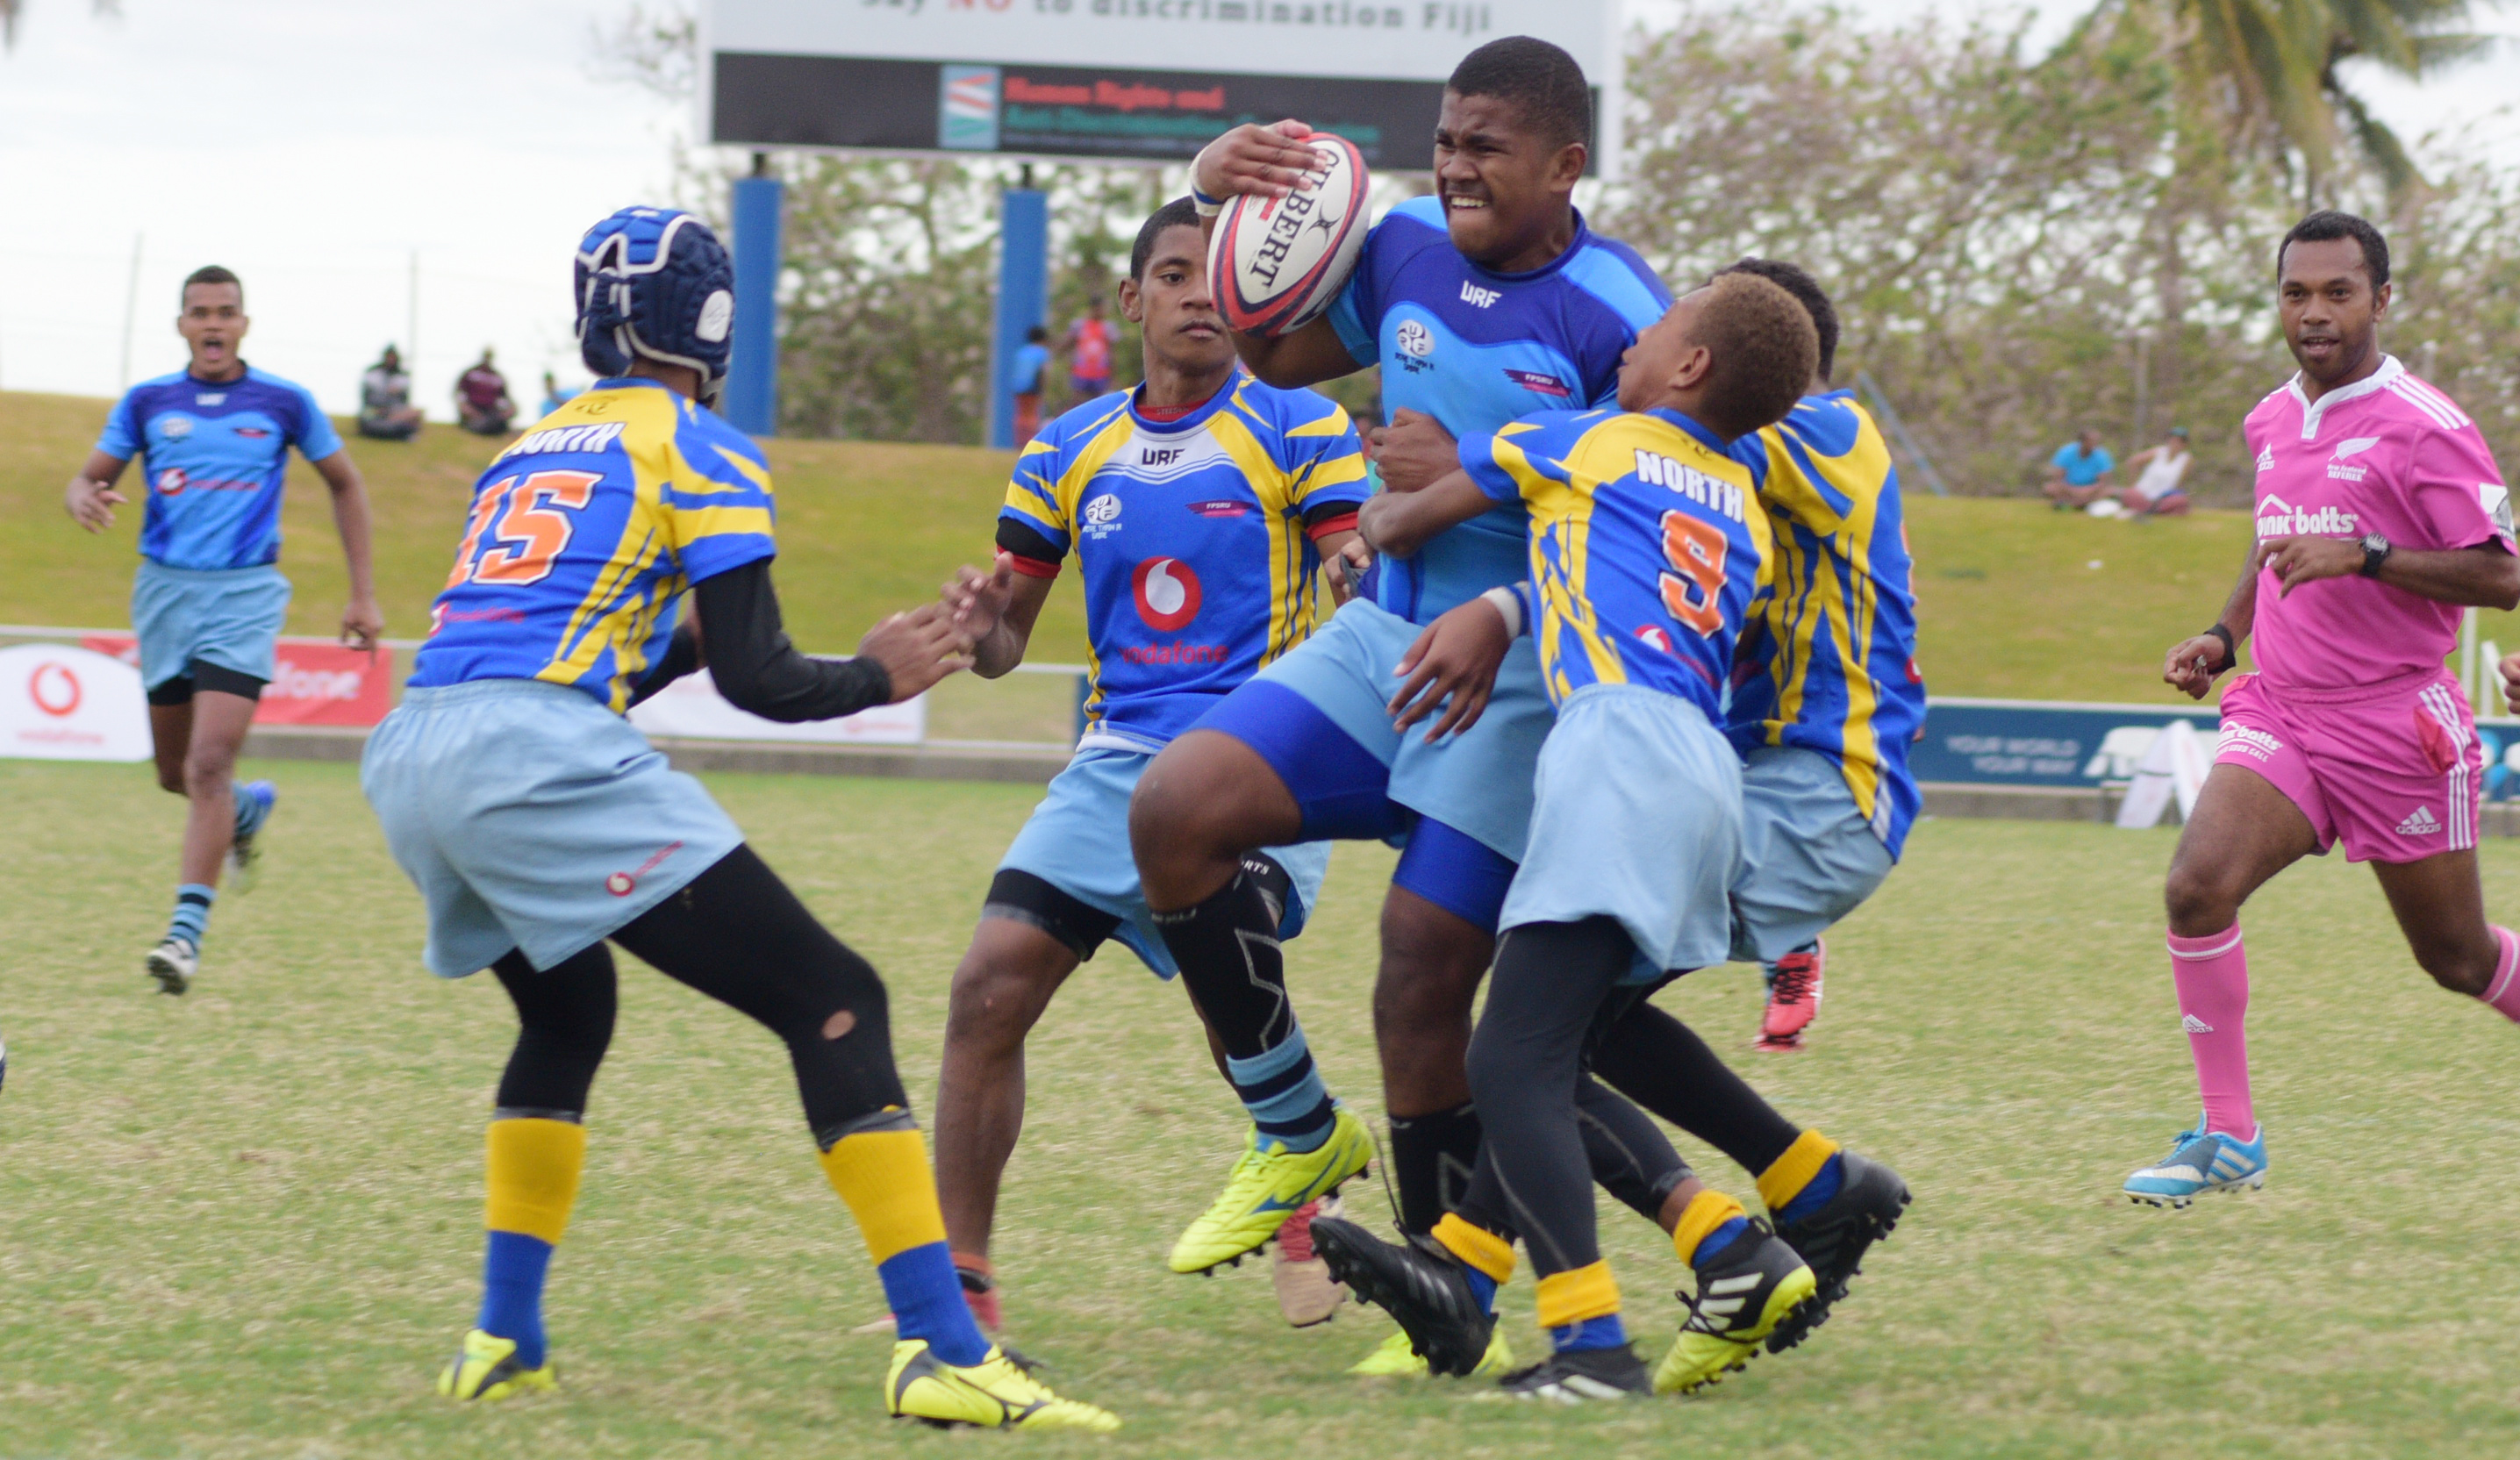 2018 Vodafone Kaji Rugby tier 1-under 14 final action between Suva and Cakaudrove at ANZ Stadium on August 15, 2018. Photo: Ronald Kumar